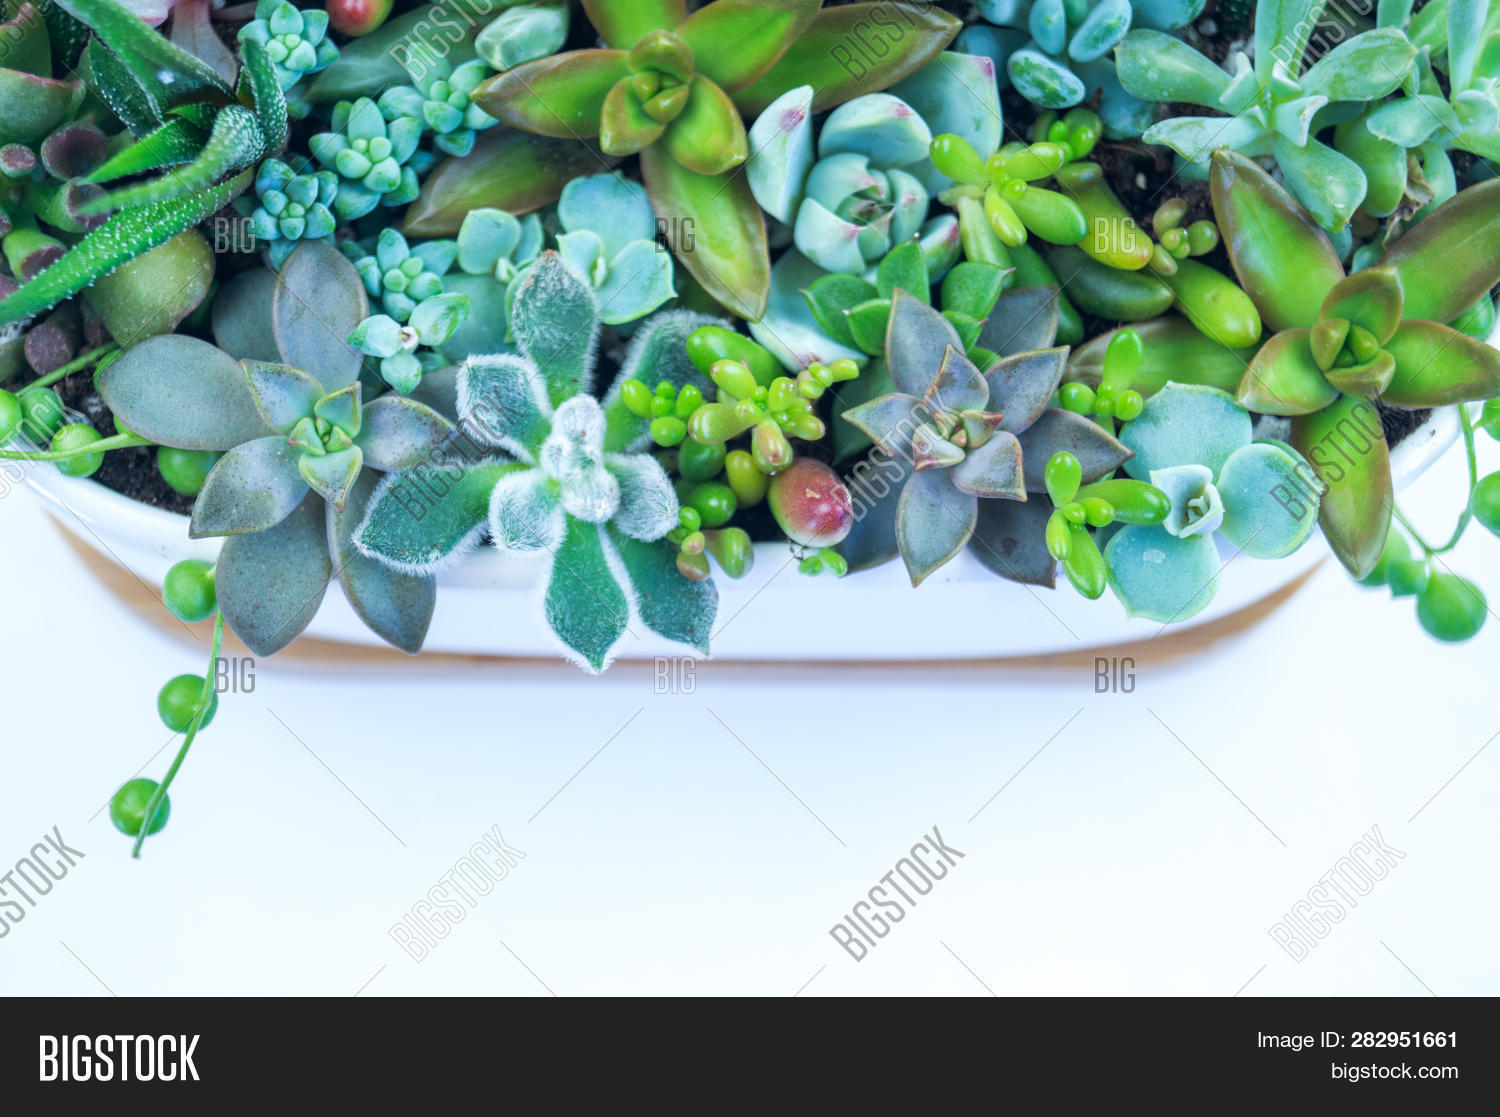 Composition Green Blue Image Photo Free Trial Bigstock